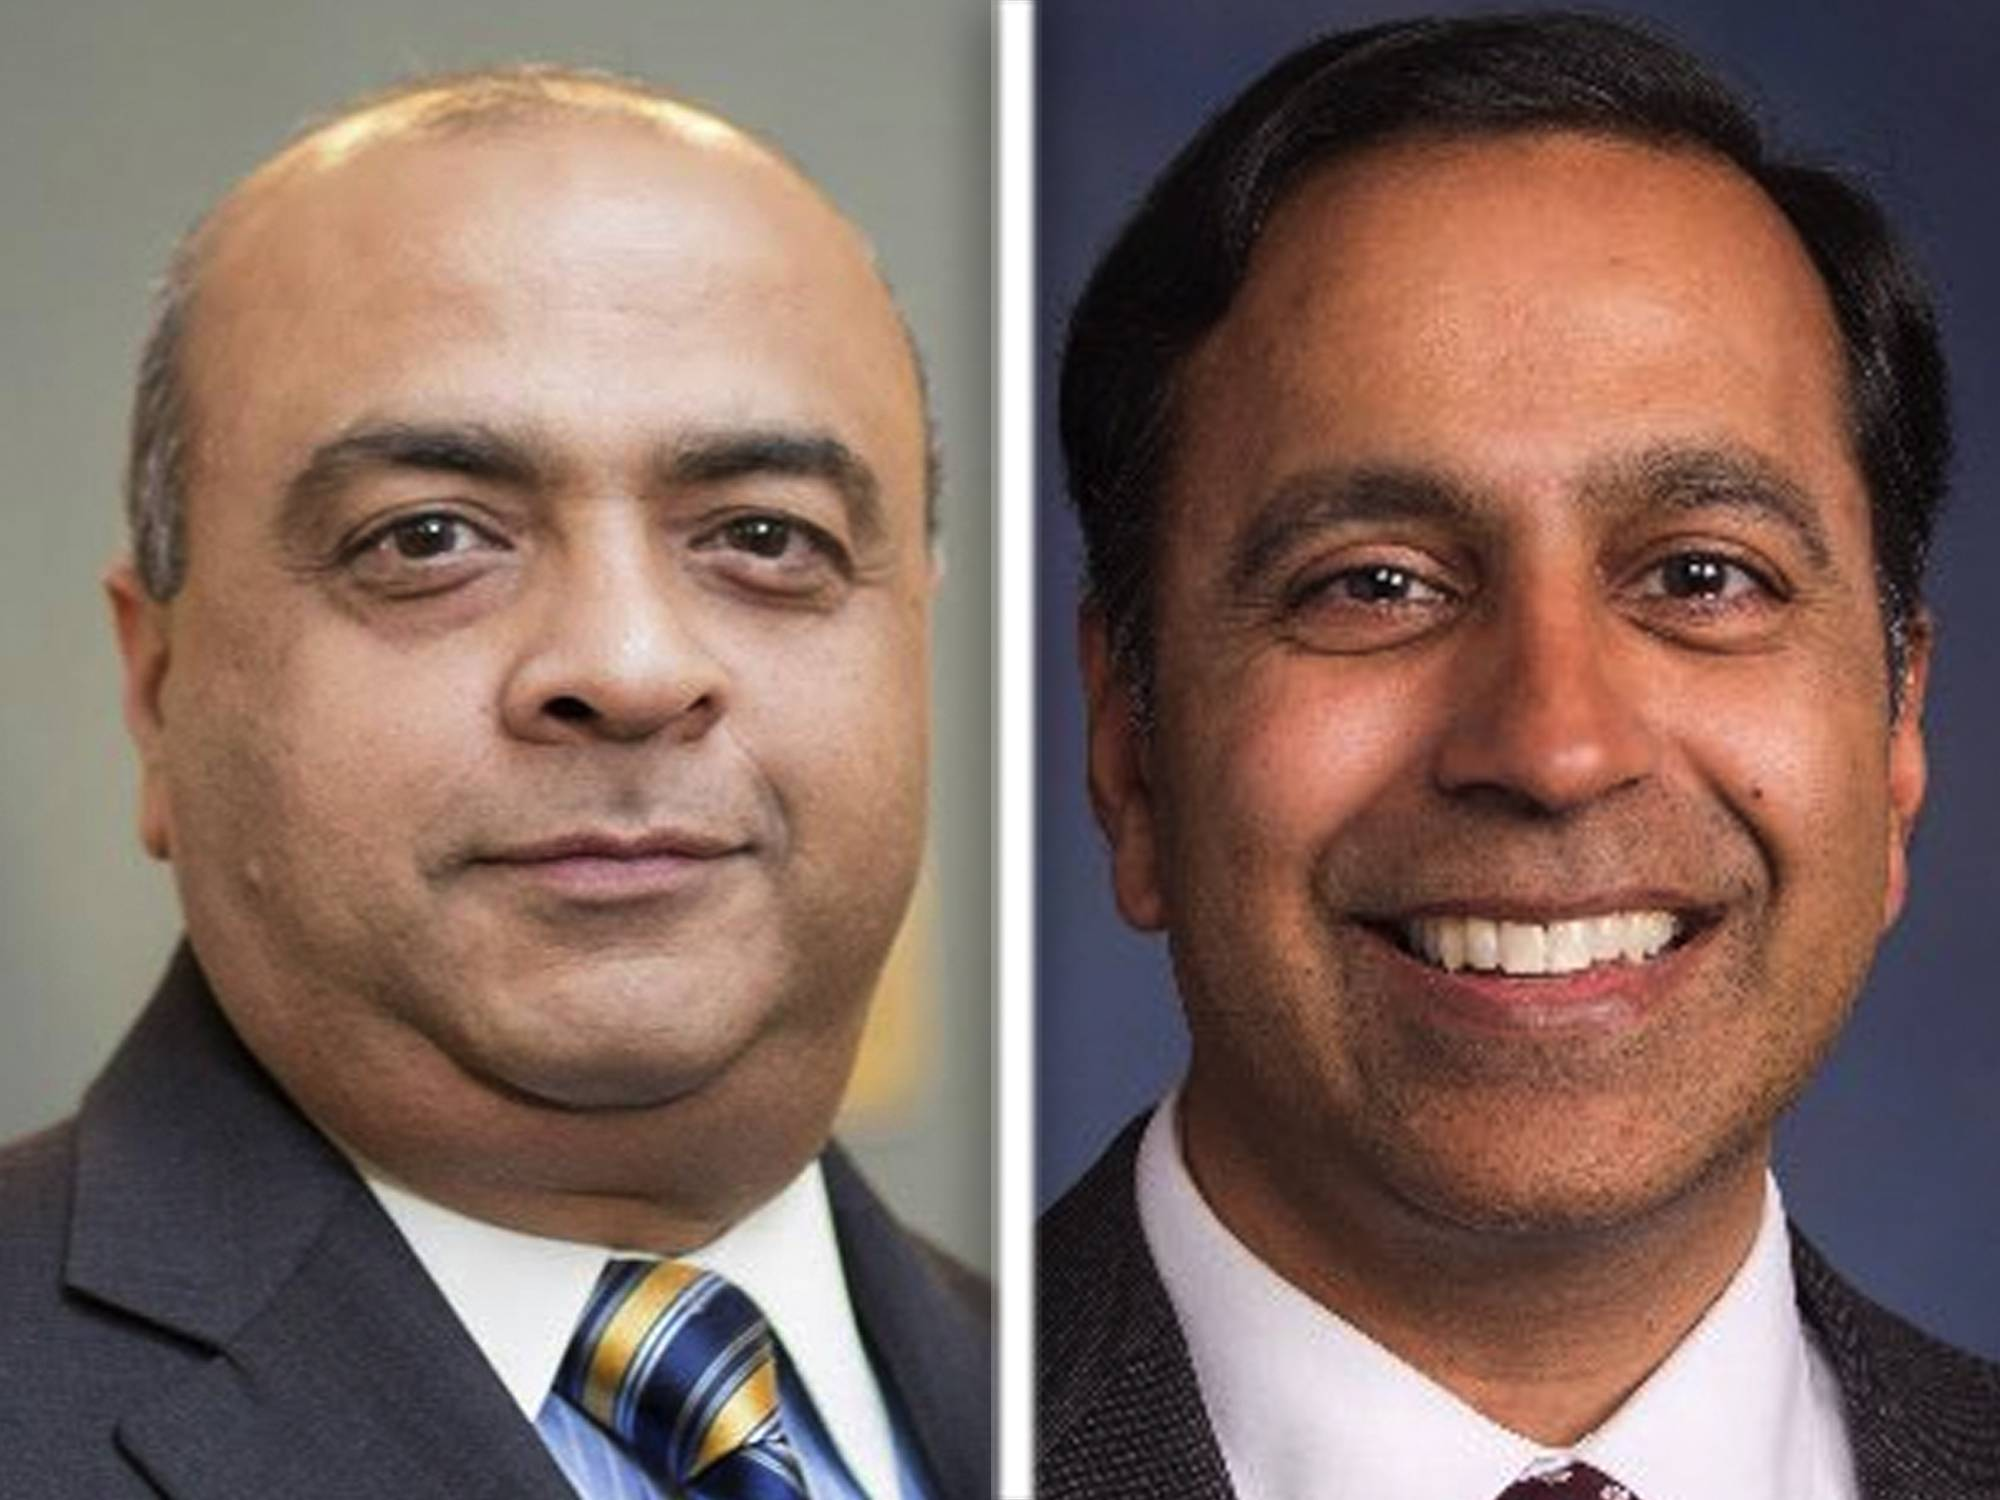 Republican challenger Jitendra Diganvker, left, and Democratic incumbent Raja Krishnamoorthi are candidates for the 8th Congressional District seat.